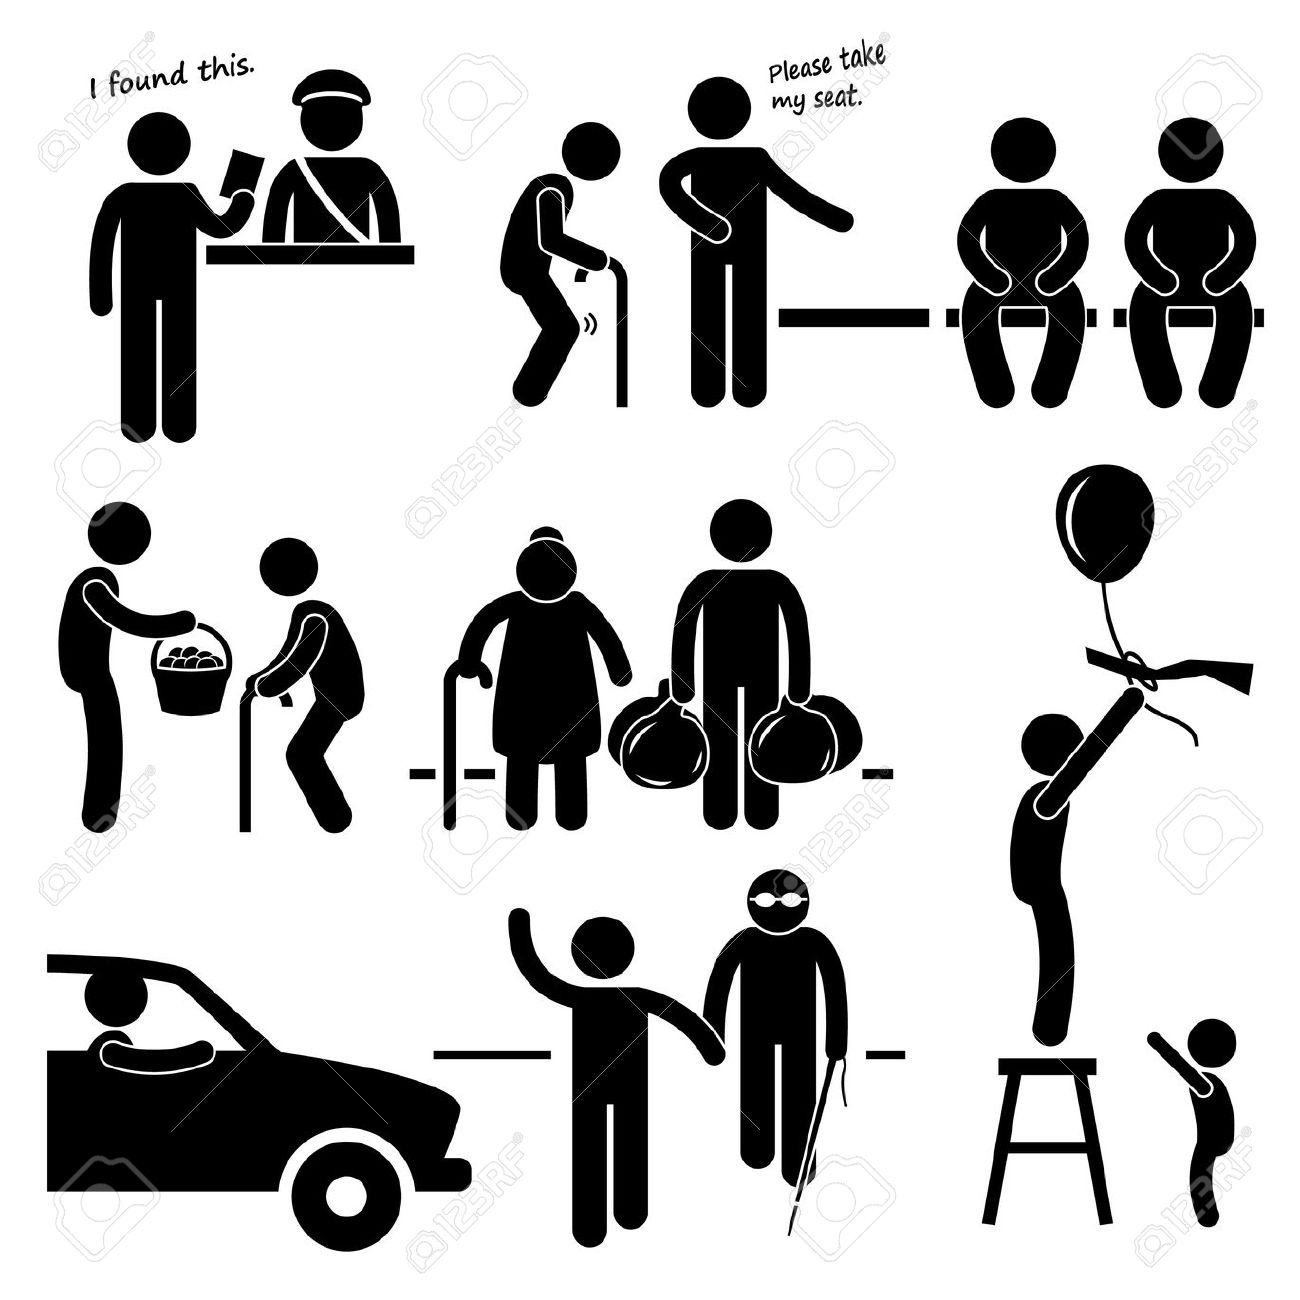 Helping People Clipart Black And White 20 Free Cliparts